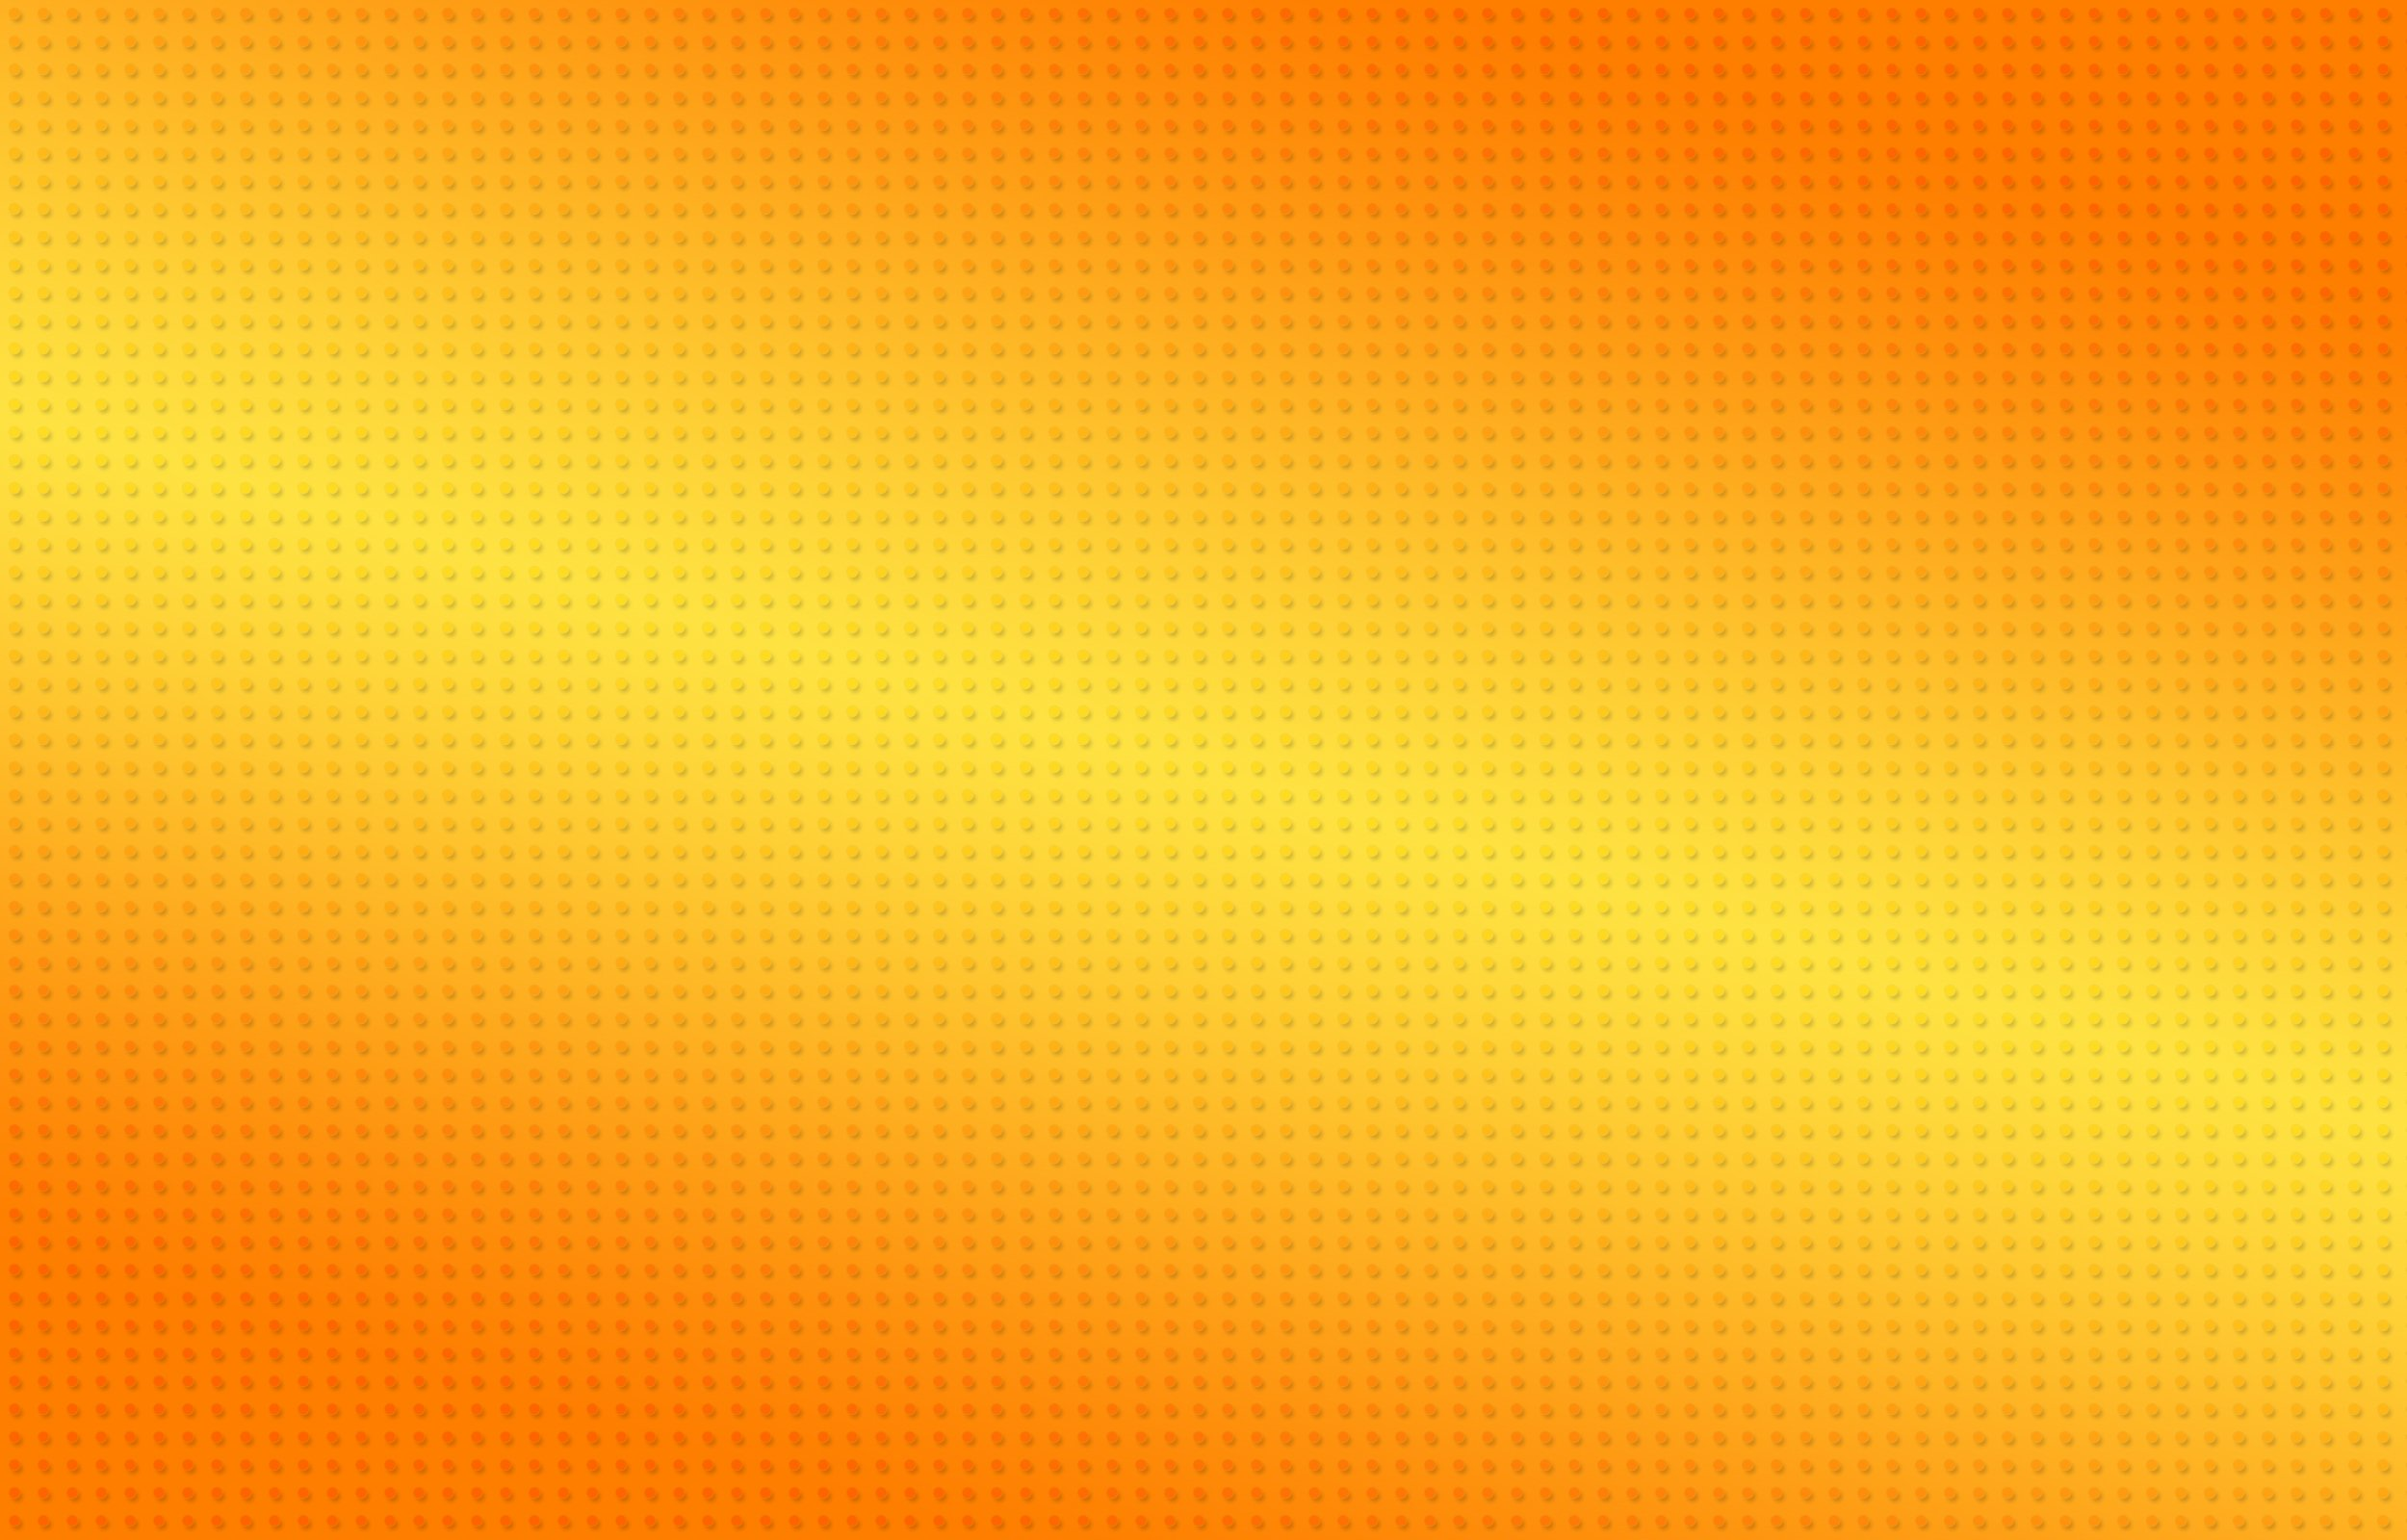 Orange Computer Wallpapers Desktop Backgrounds 2500x1600 ID 2500x1600